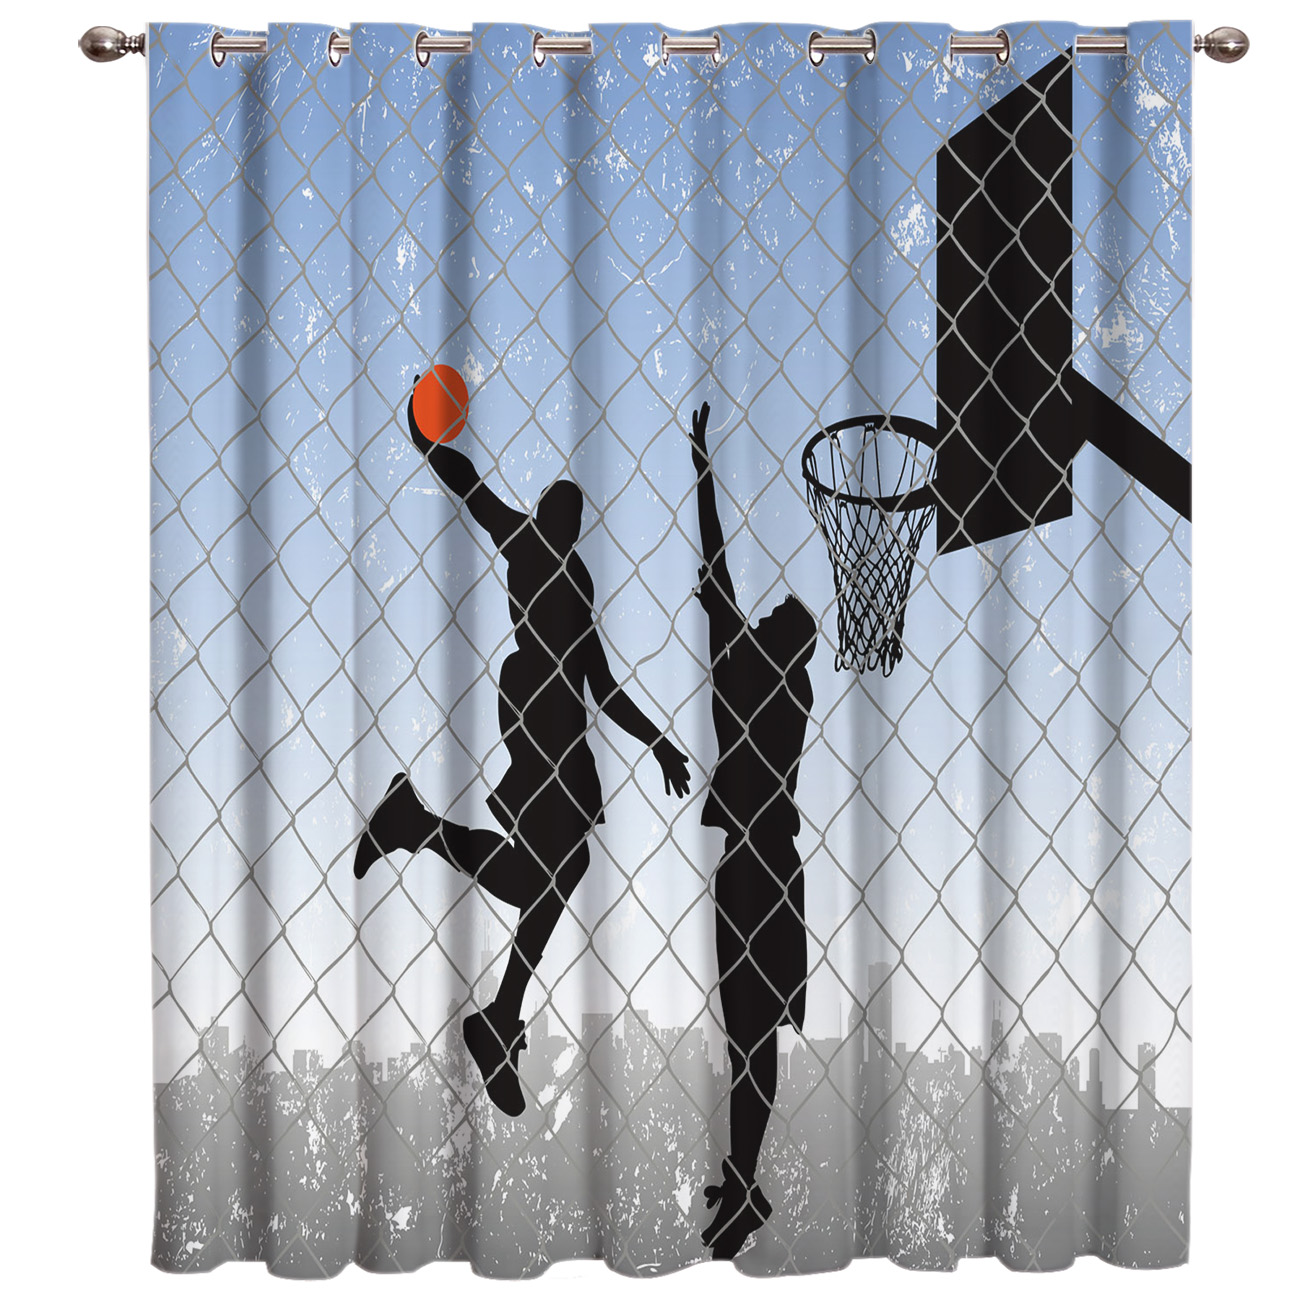 Basketball Shooting Silhouette Abstract Net Sports Game Figure Jumping Blackout Drapes Fabric Indoor Kids Curtain Panels With